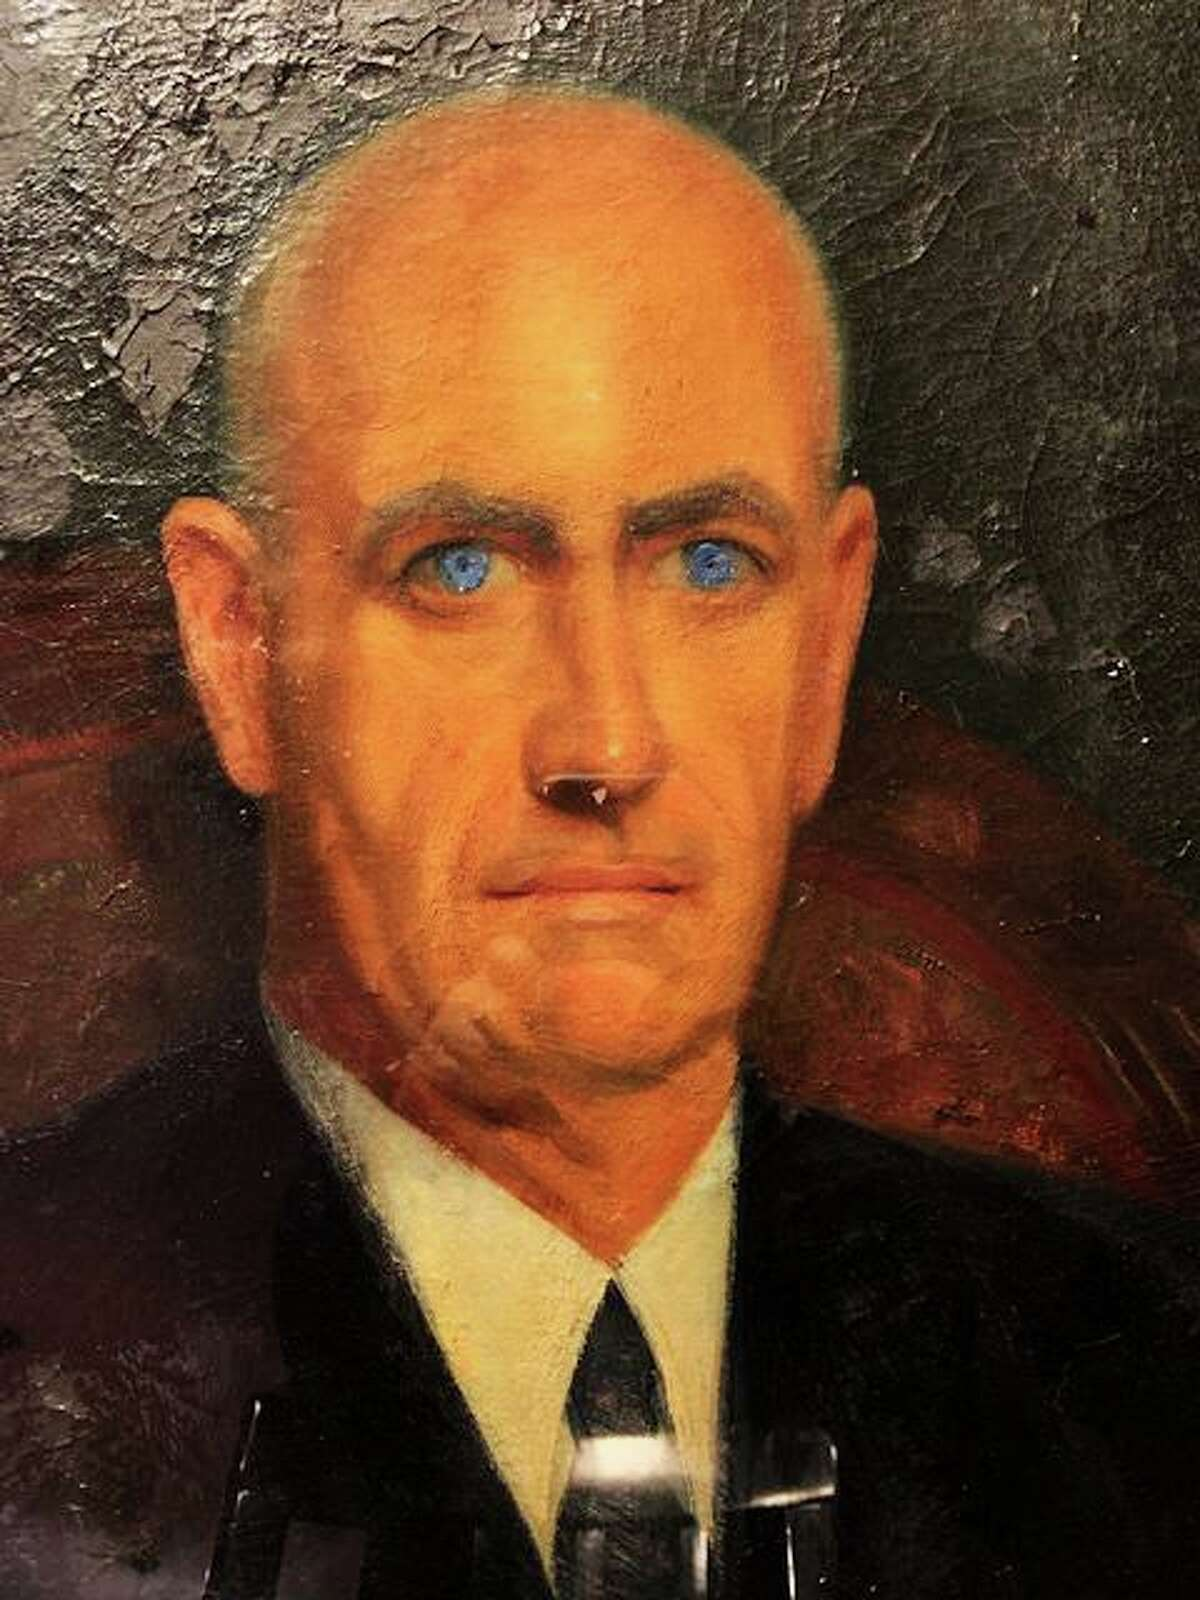 East Hampton artist Alice Bevin painted this portrait of historian Carl Price. Their life and works will be the subject of the 1st Cabin Fever History Series organized by the Chatham Historical Society and sponsored by the East Hampton Library Dec. 21.